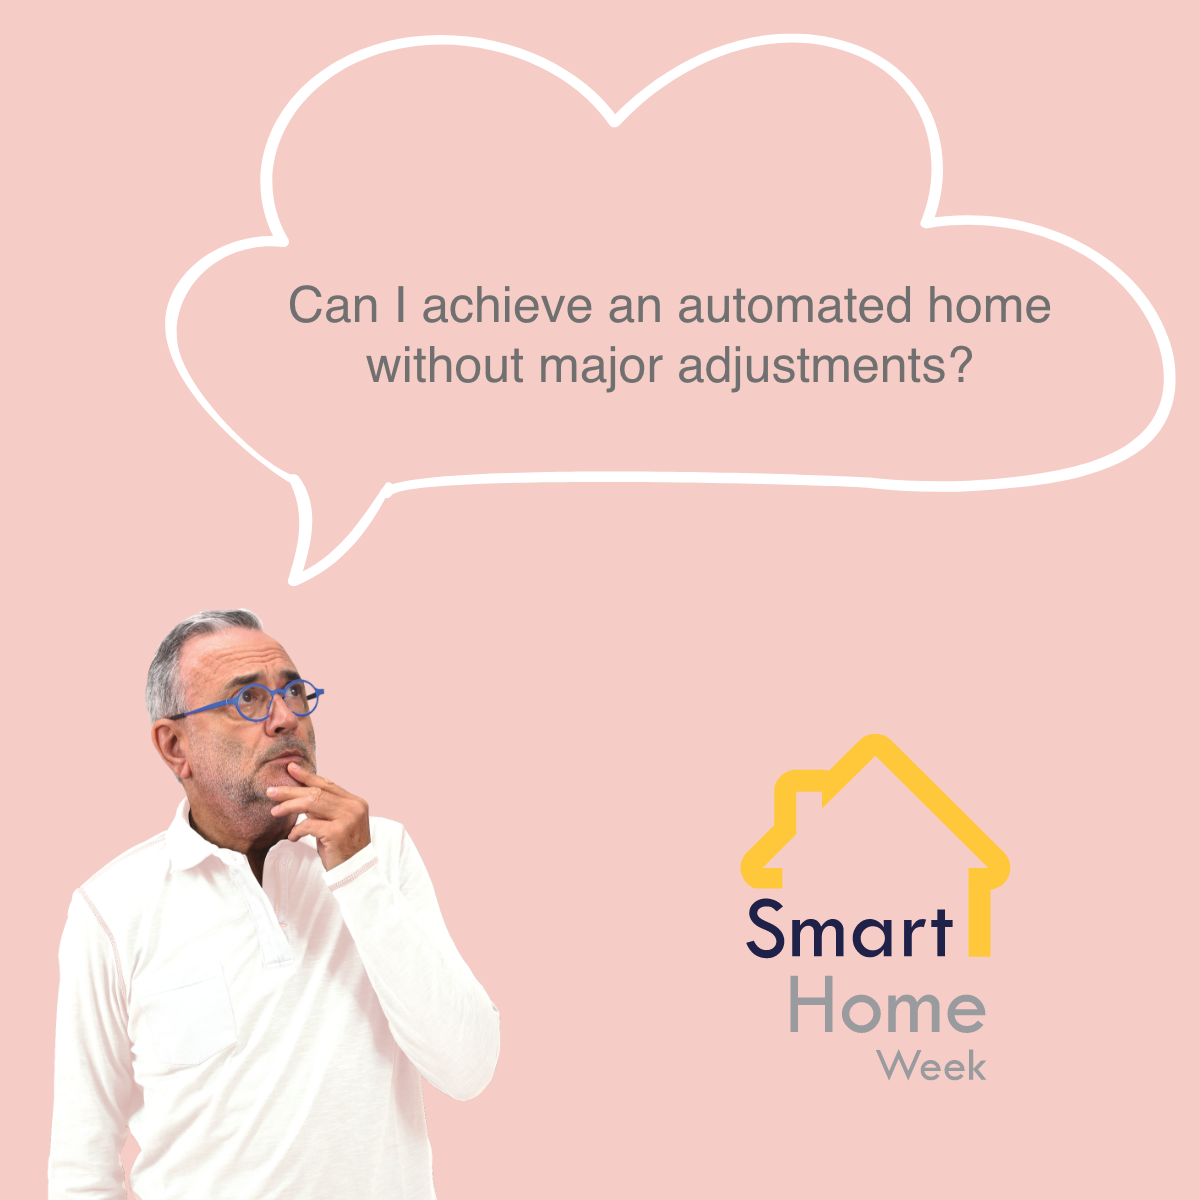 man looking confused with speech bubble stating can i achieve an automated home without major adjustments